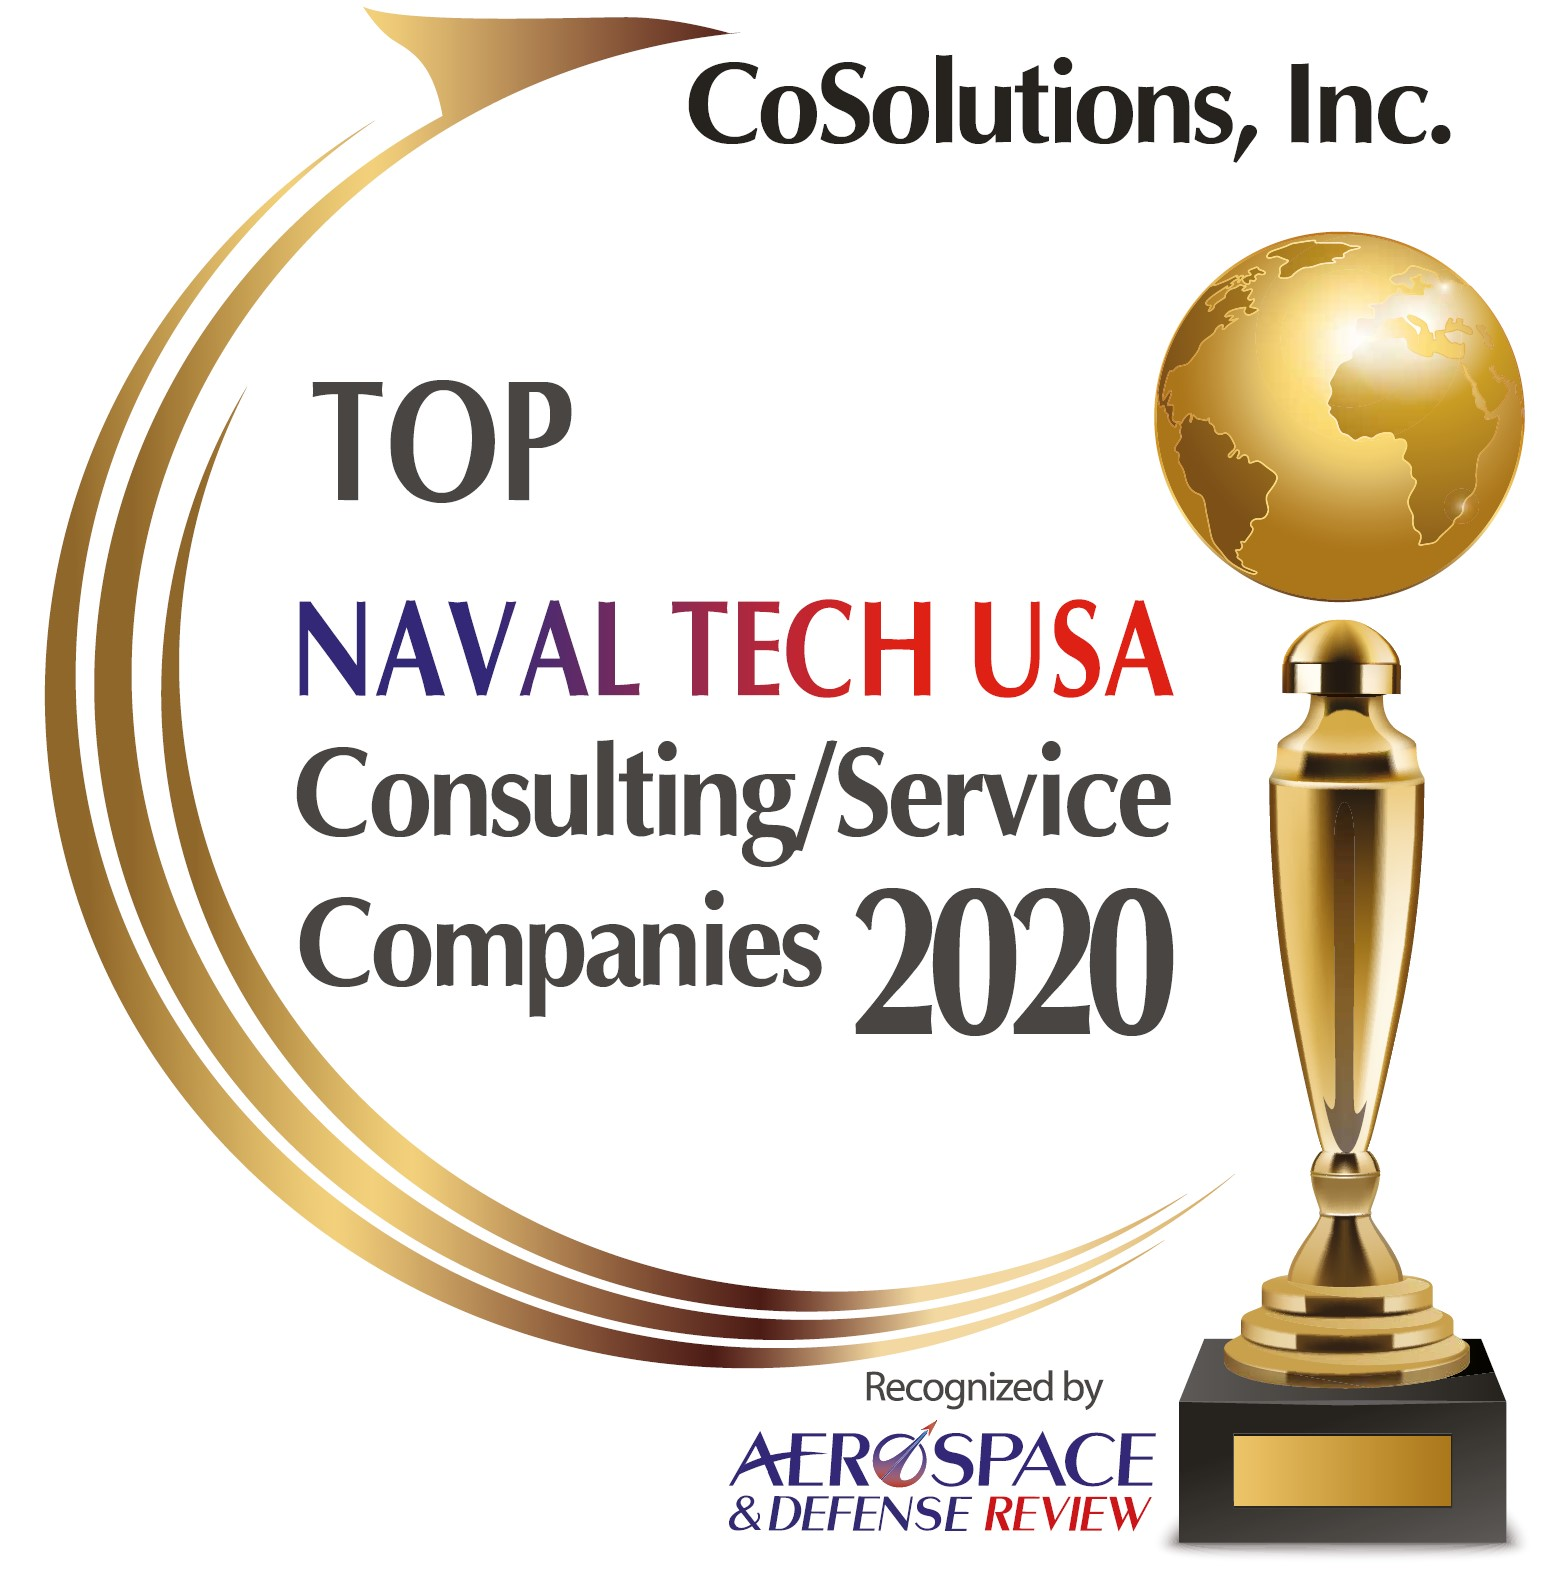 Top Naval Tech USA Consulting / Service Companies 2020 Recognize by Aerospace & Defense Review